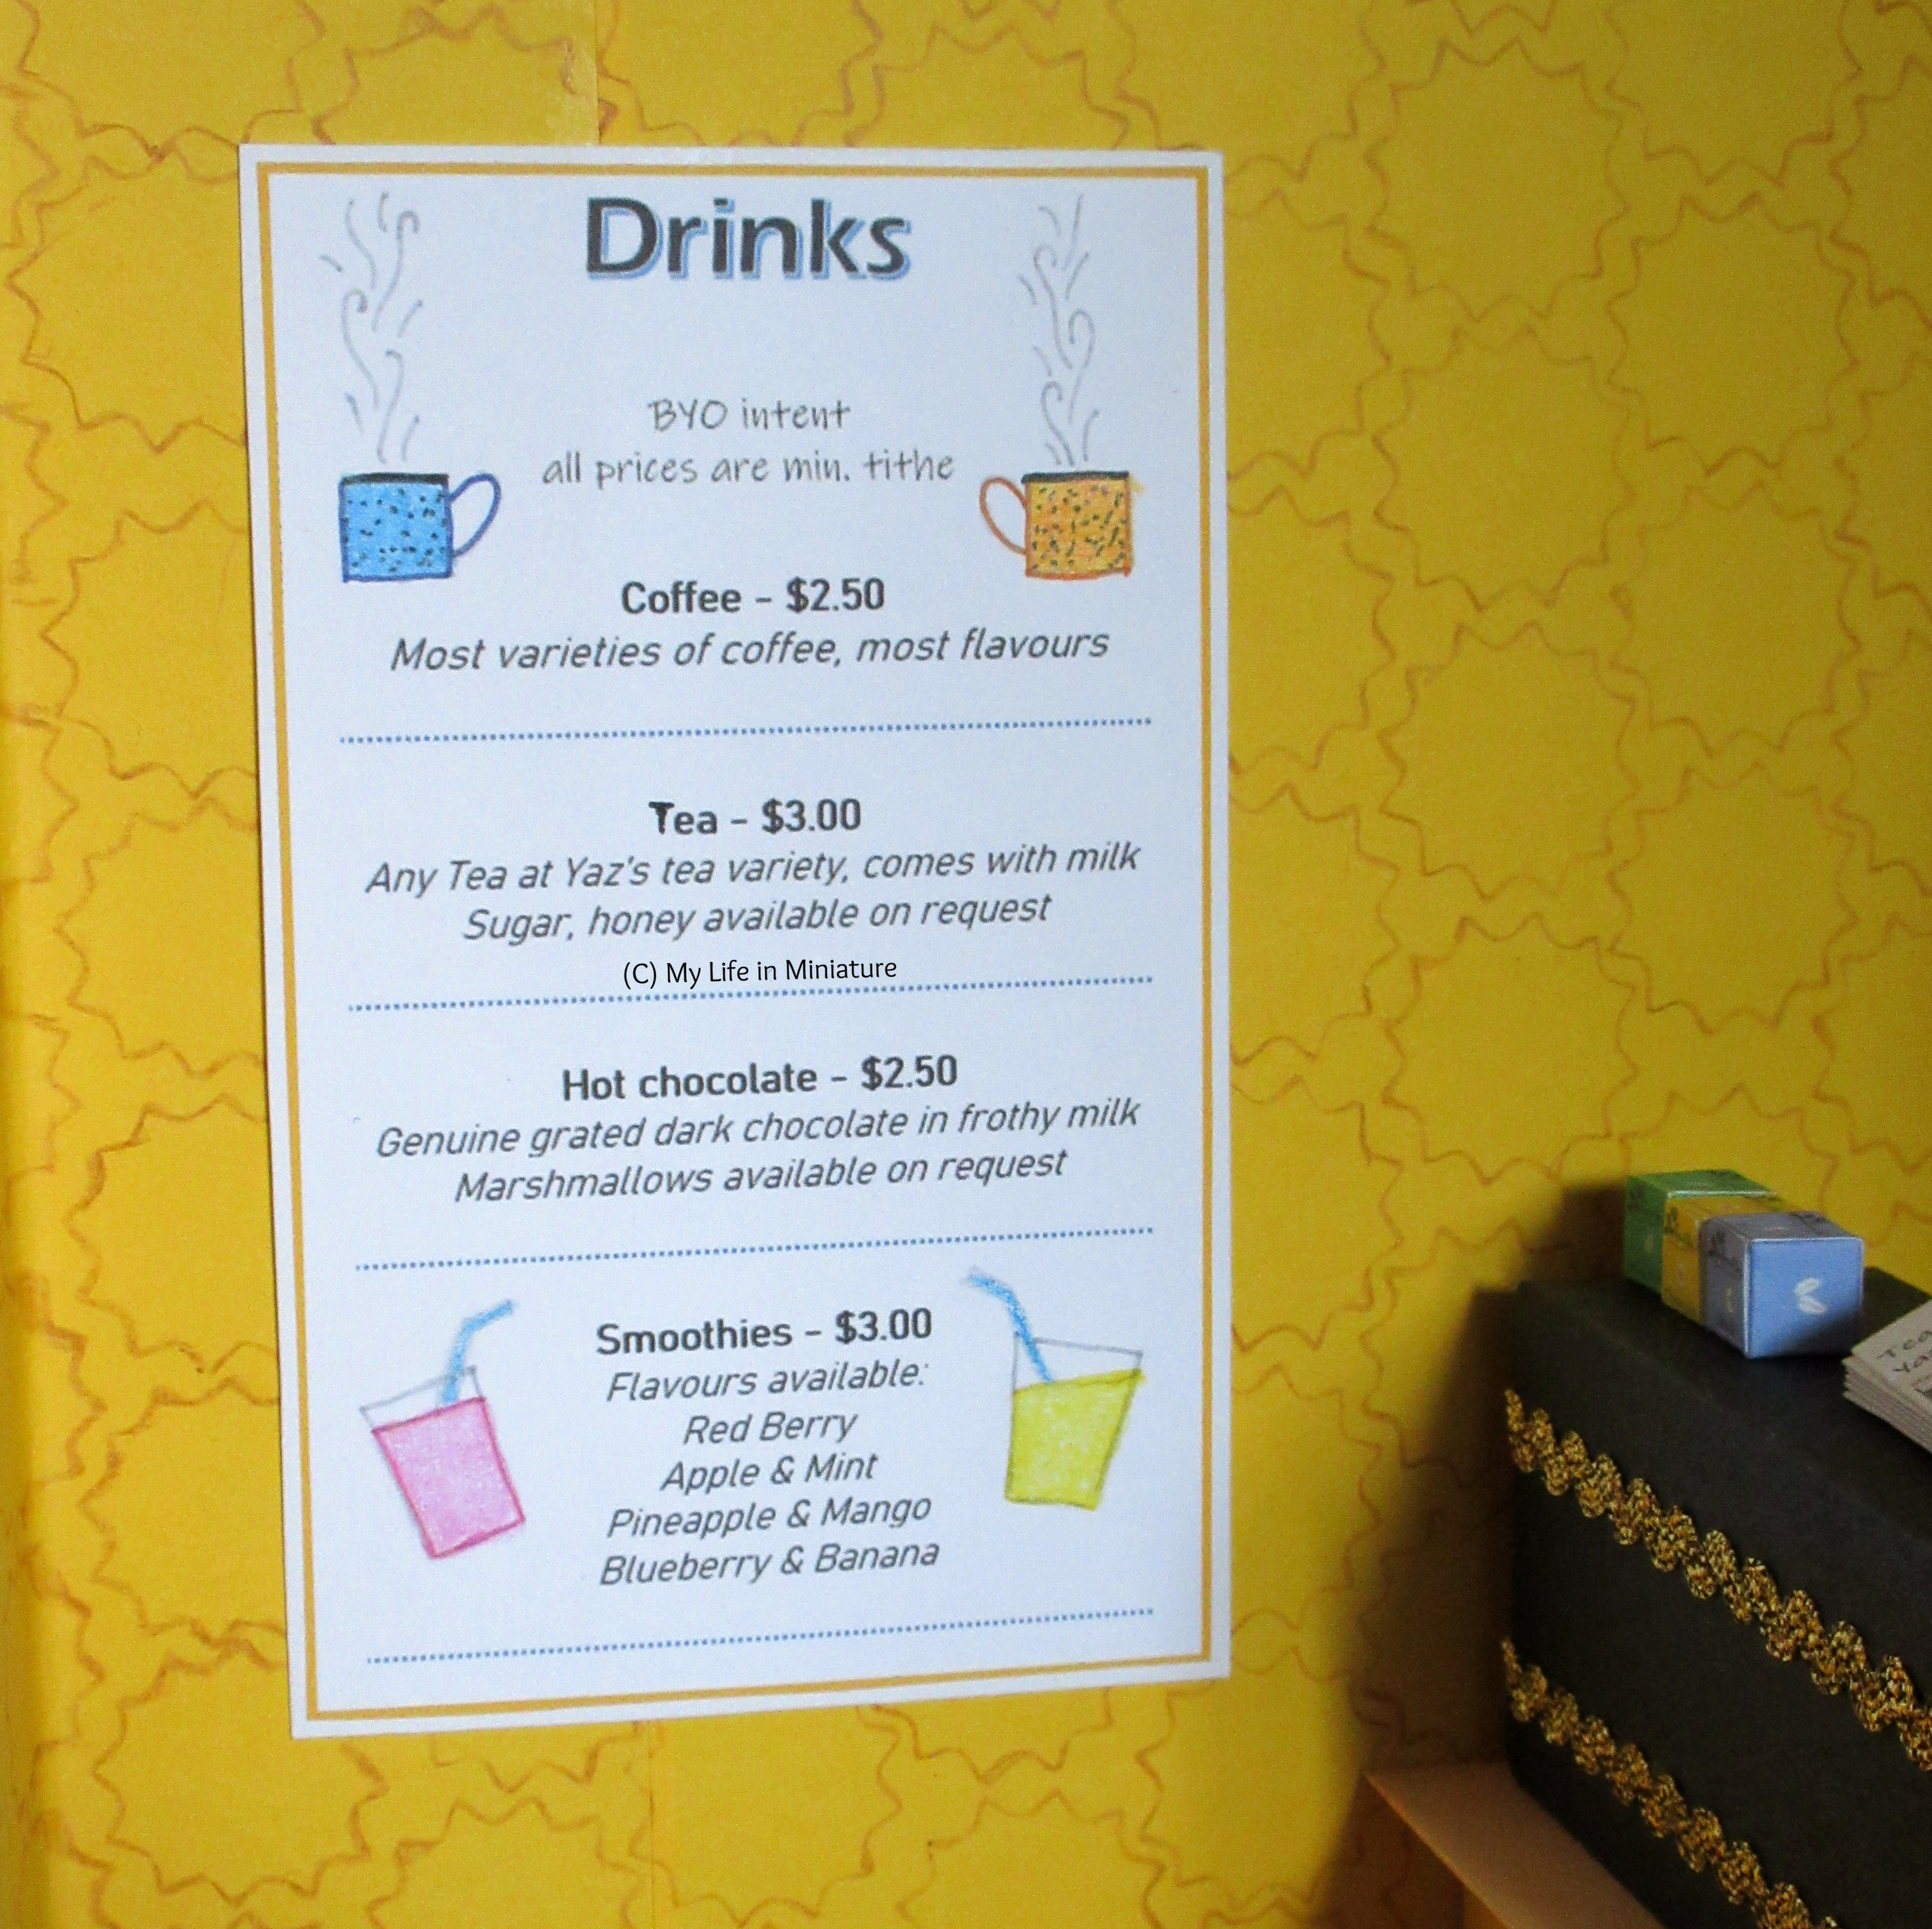 A drinks menu is on the wall of Tea at Yaz's, near the coffee machine. It lists the different drinks available, with their prices.